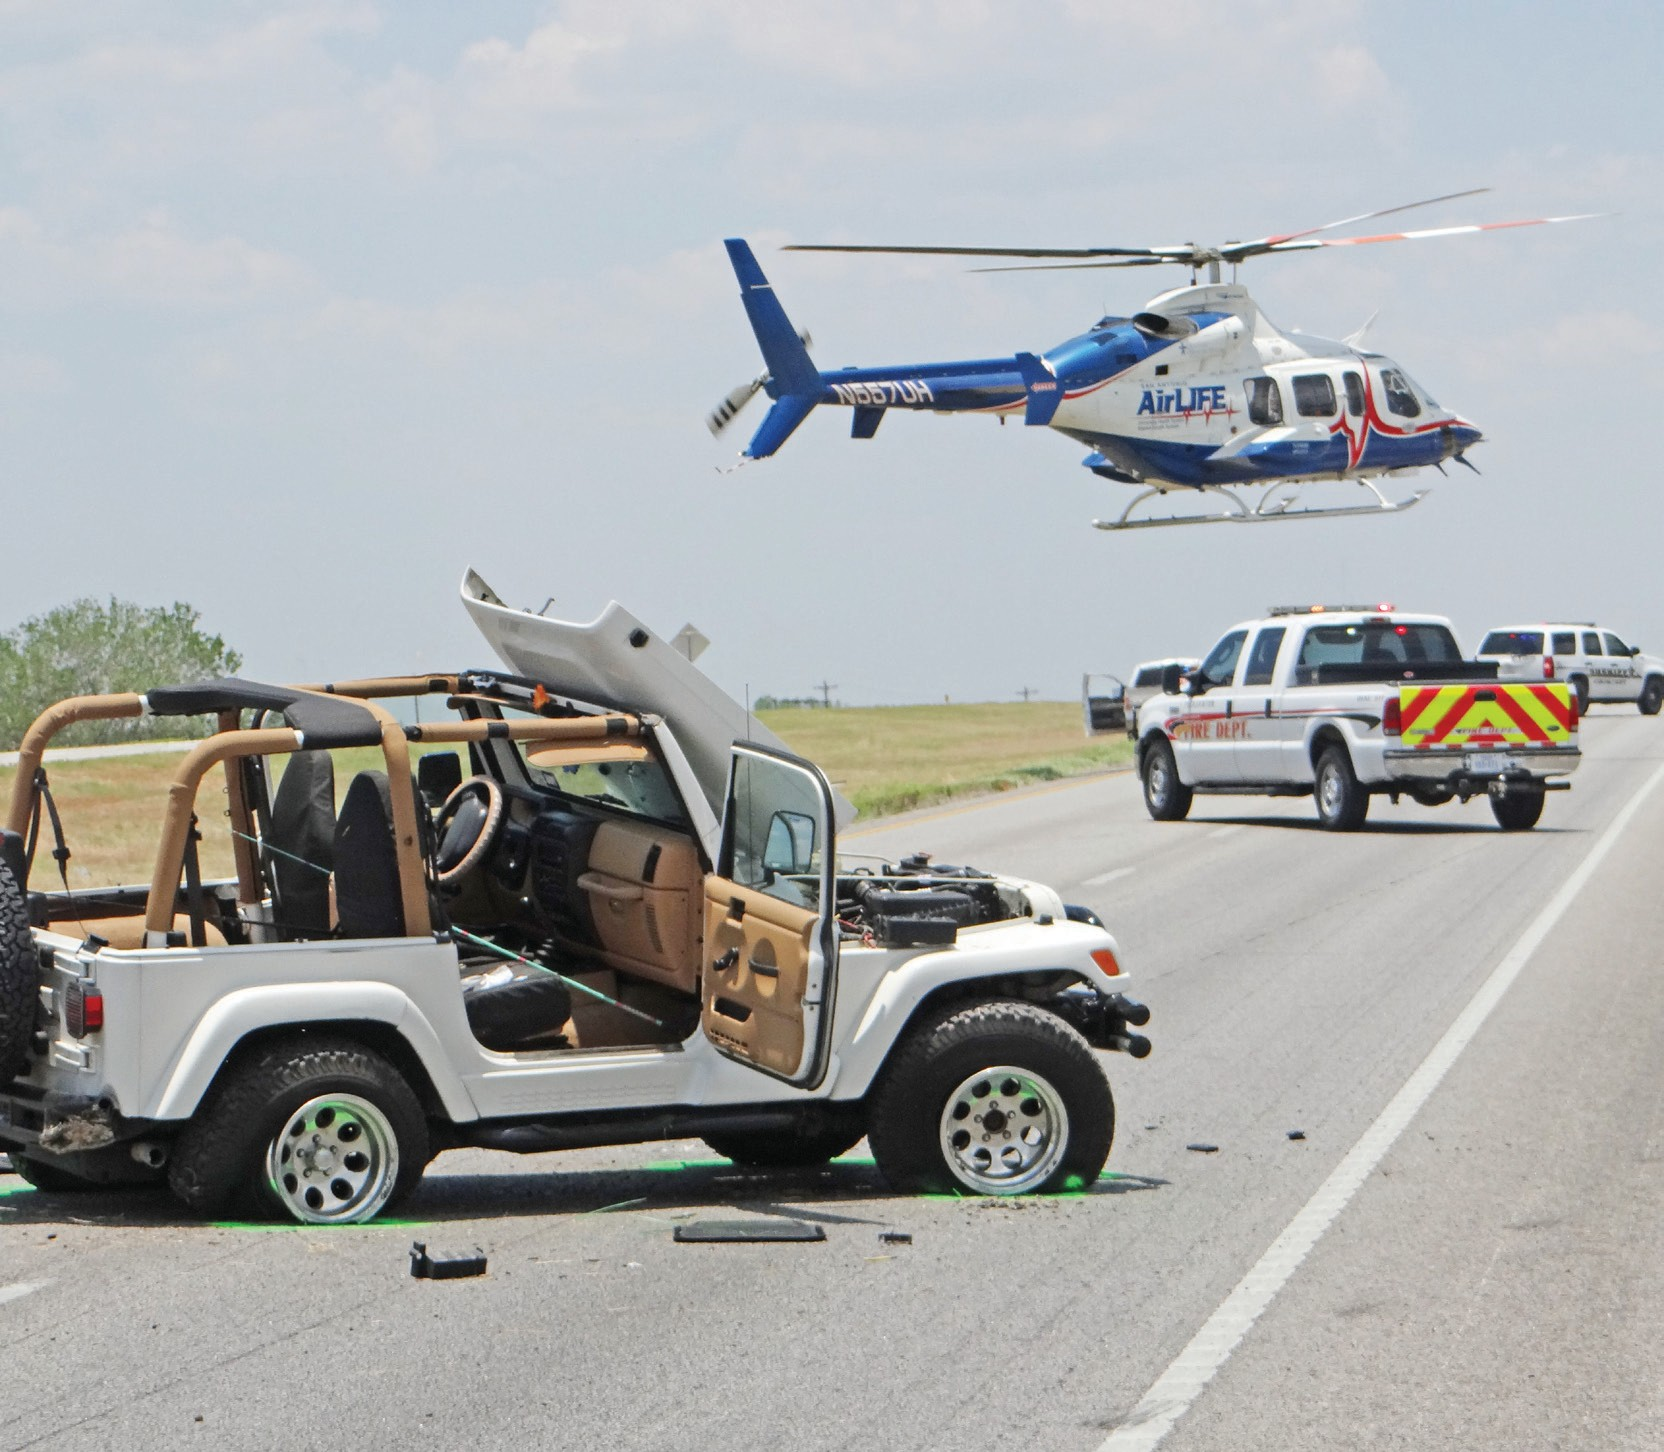 About 1:30 p.m. this Jeep was traveling southbound on I-37 when the driver lost control and ended up in the northbound lanes . A female passenger, thrown from the vehicle and was Airlifted from the scene. The accident caused traffic to be backed up for about a mile or more.